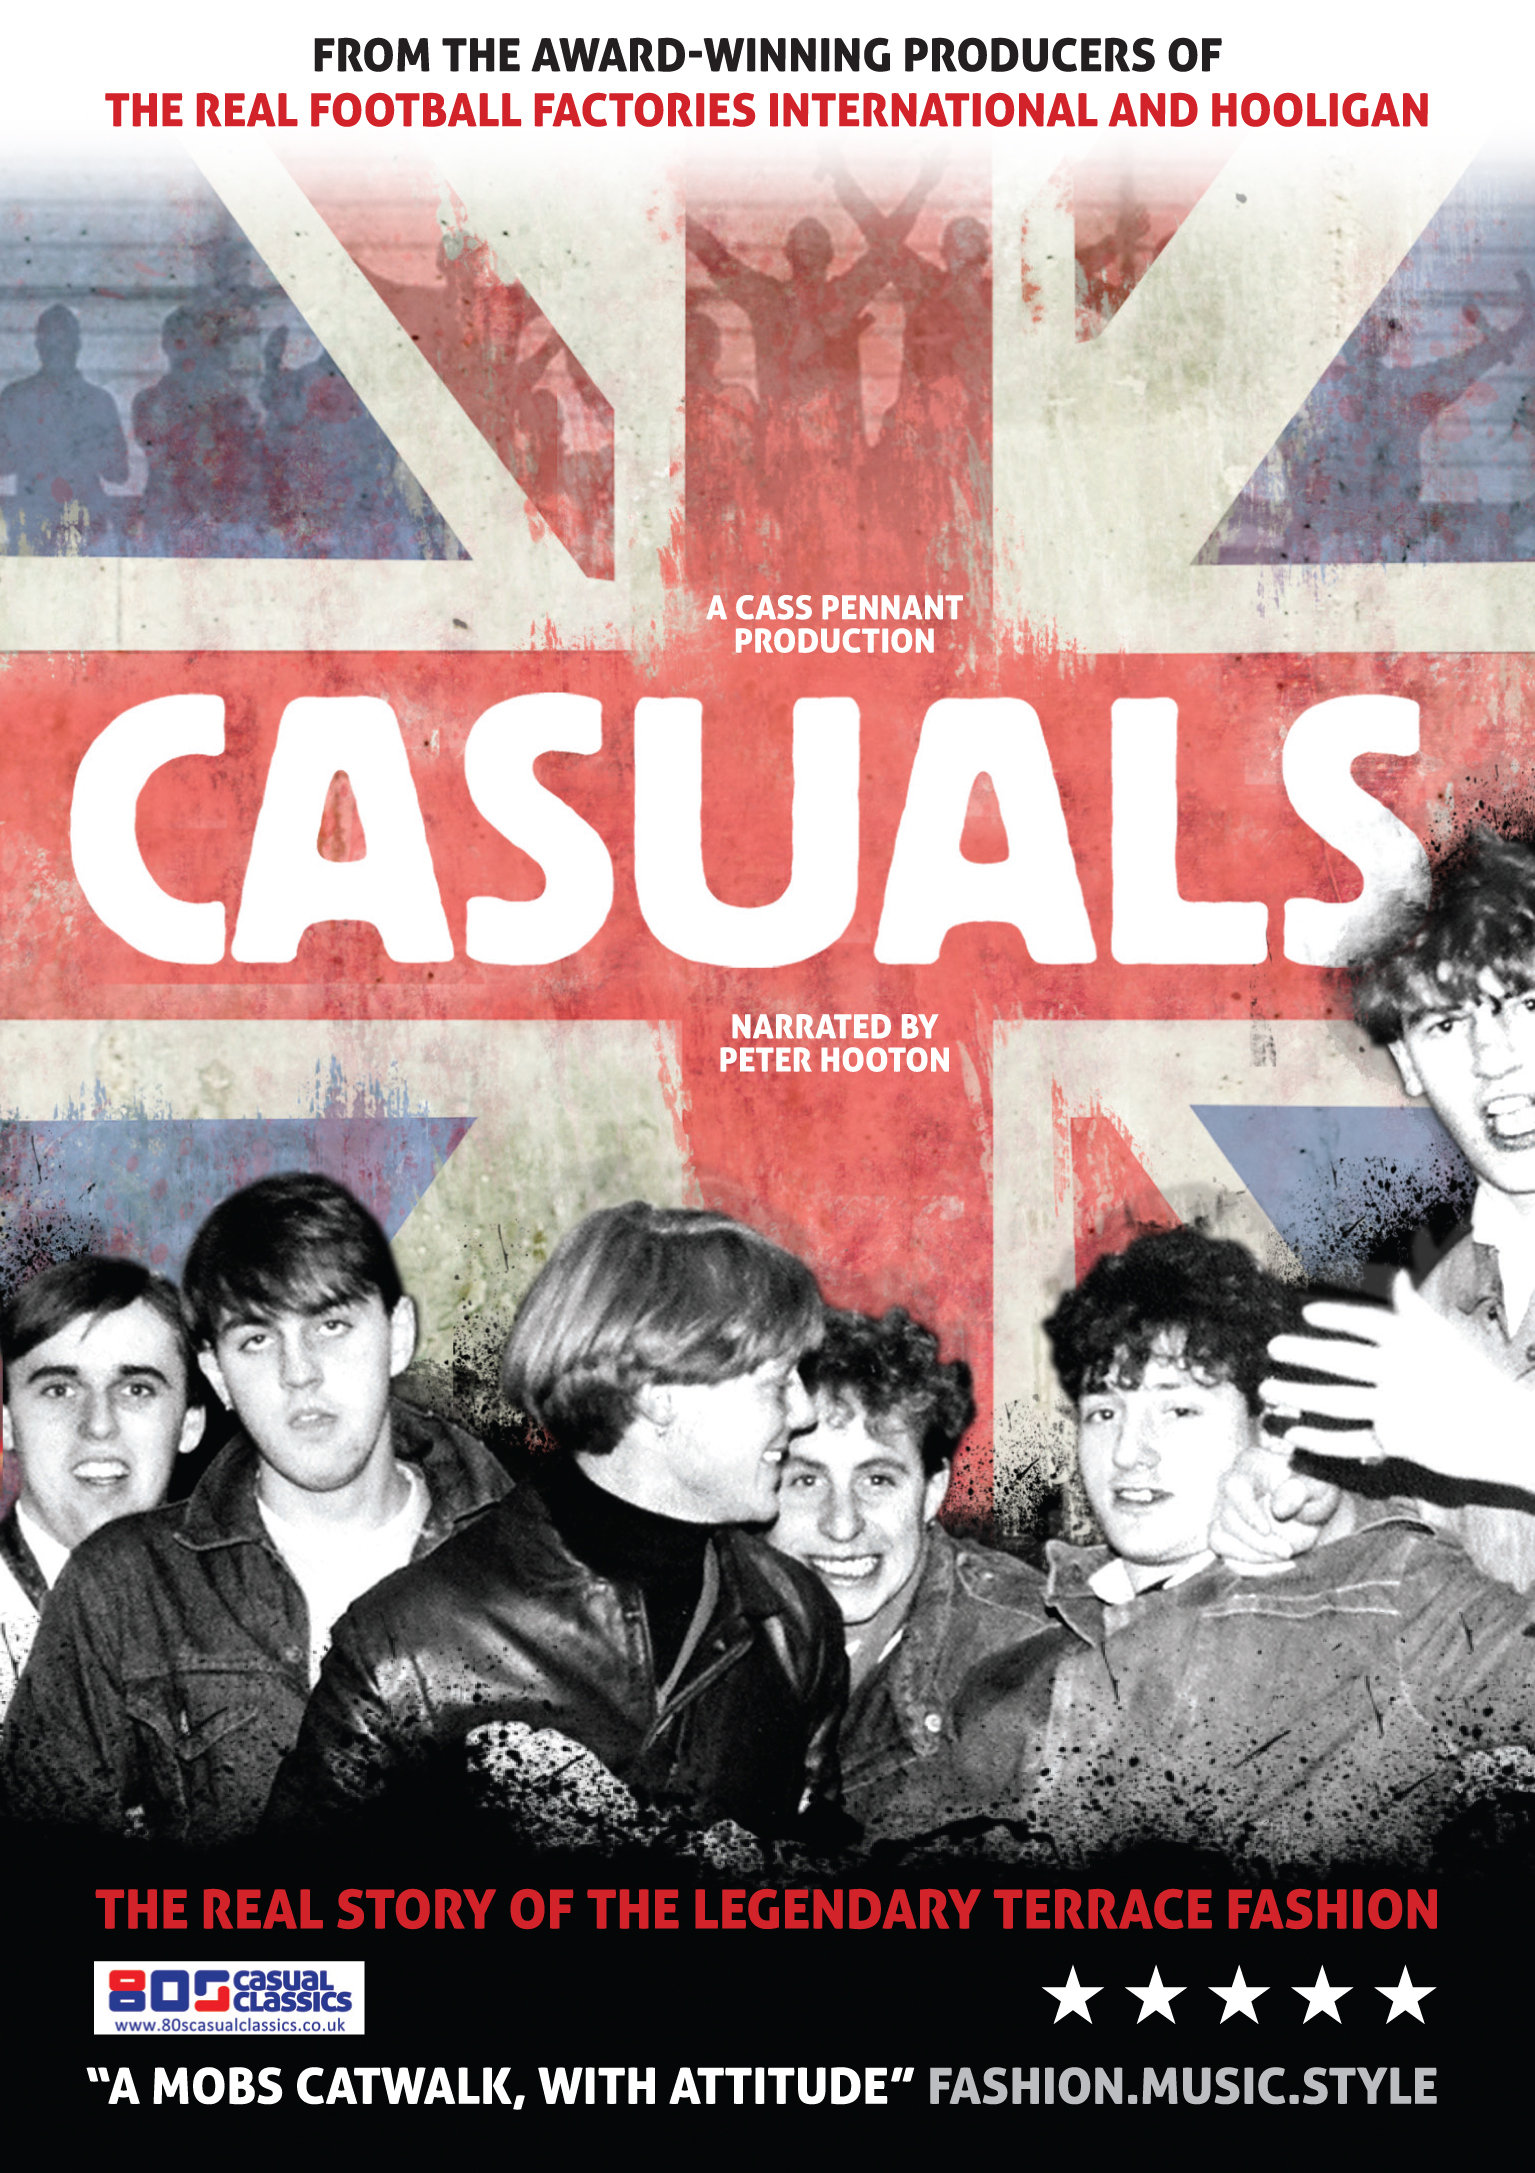 Casuals: The Story of the Legendary Terrace Fashion (2011) - IMDb Casuals the story of legendary terrace fashion full movie